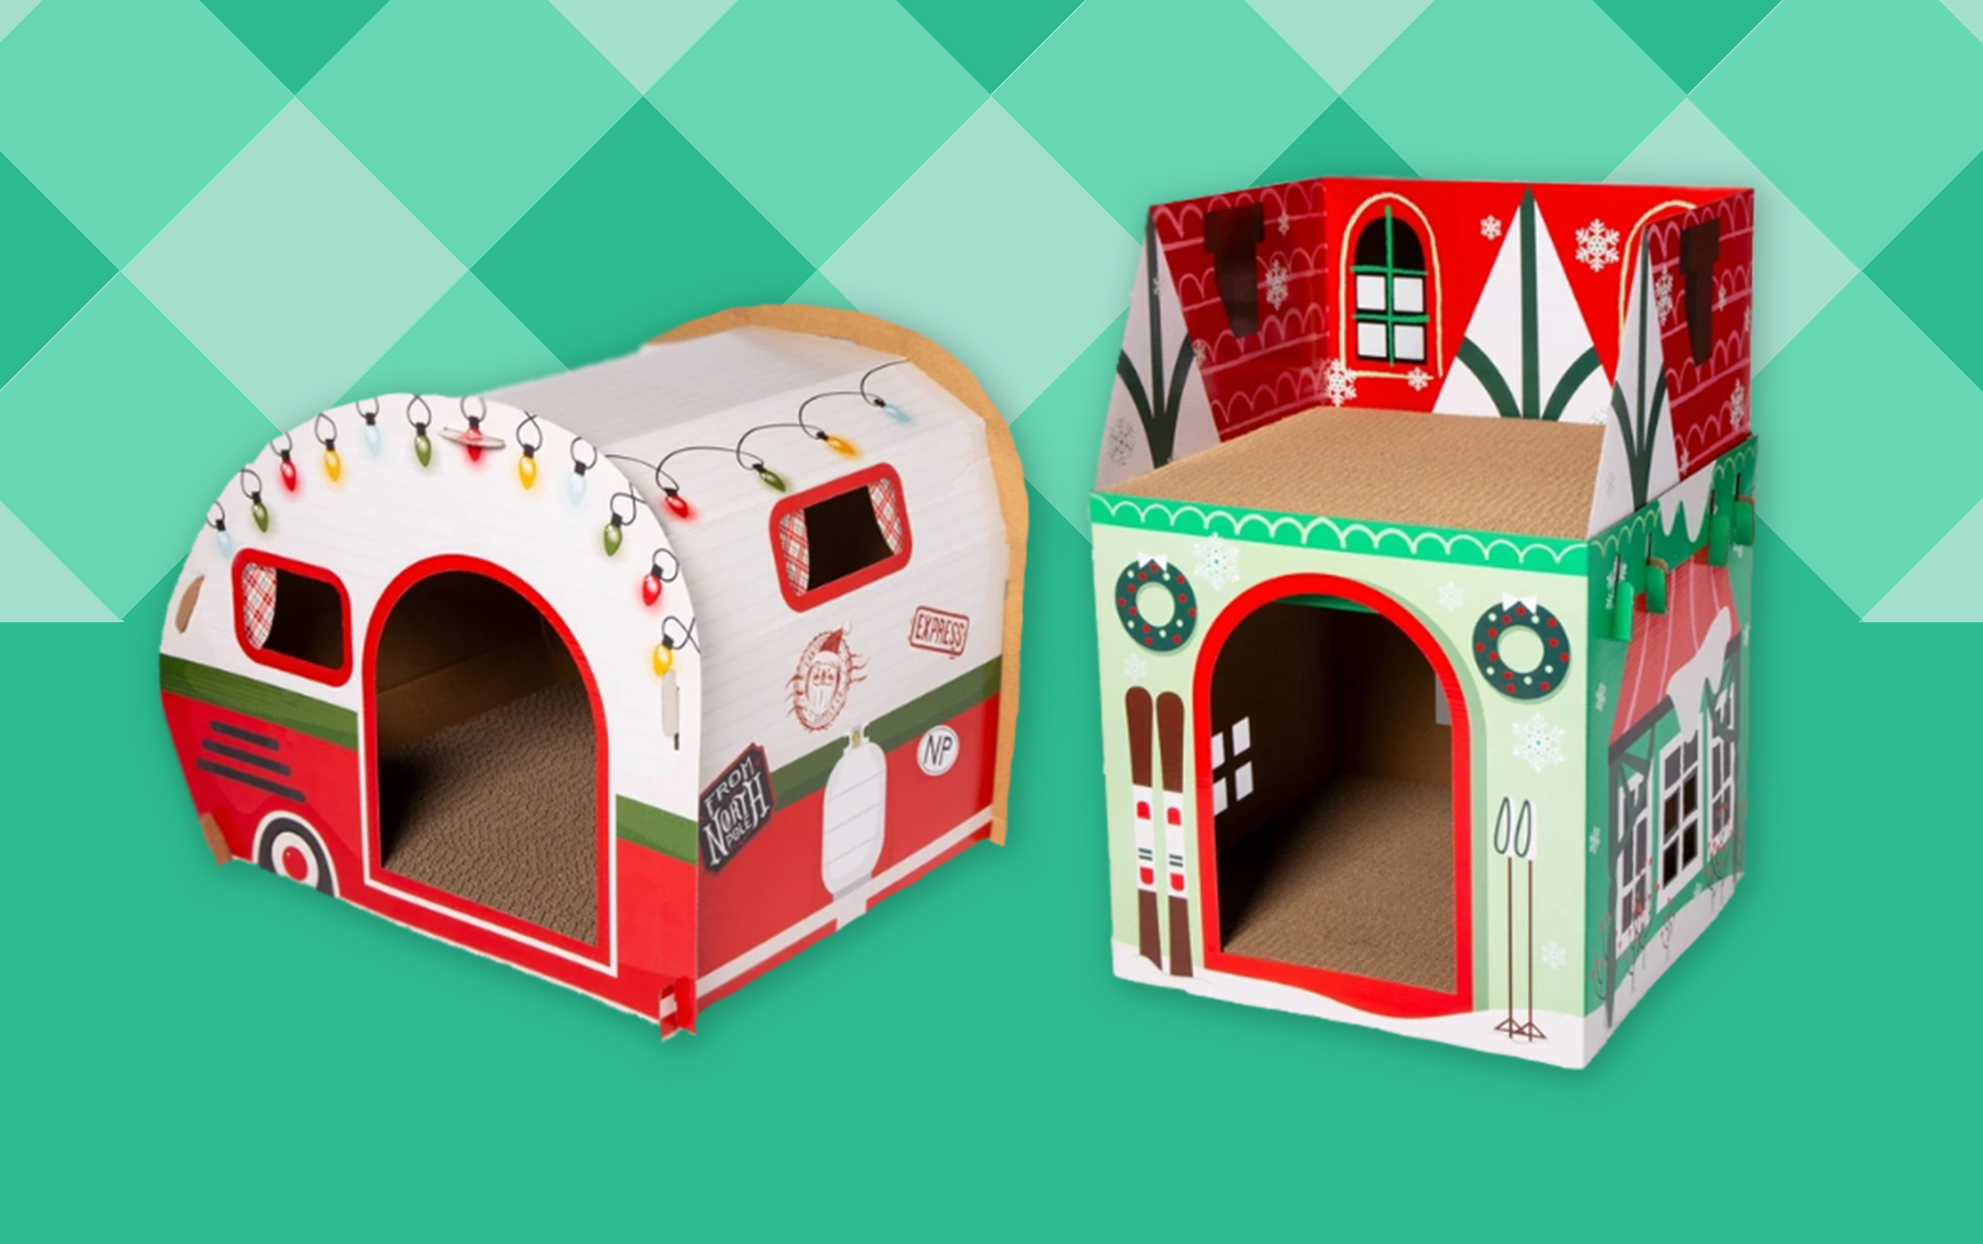 Target RV and chalet holiday cat scratcher houses